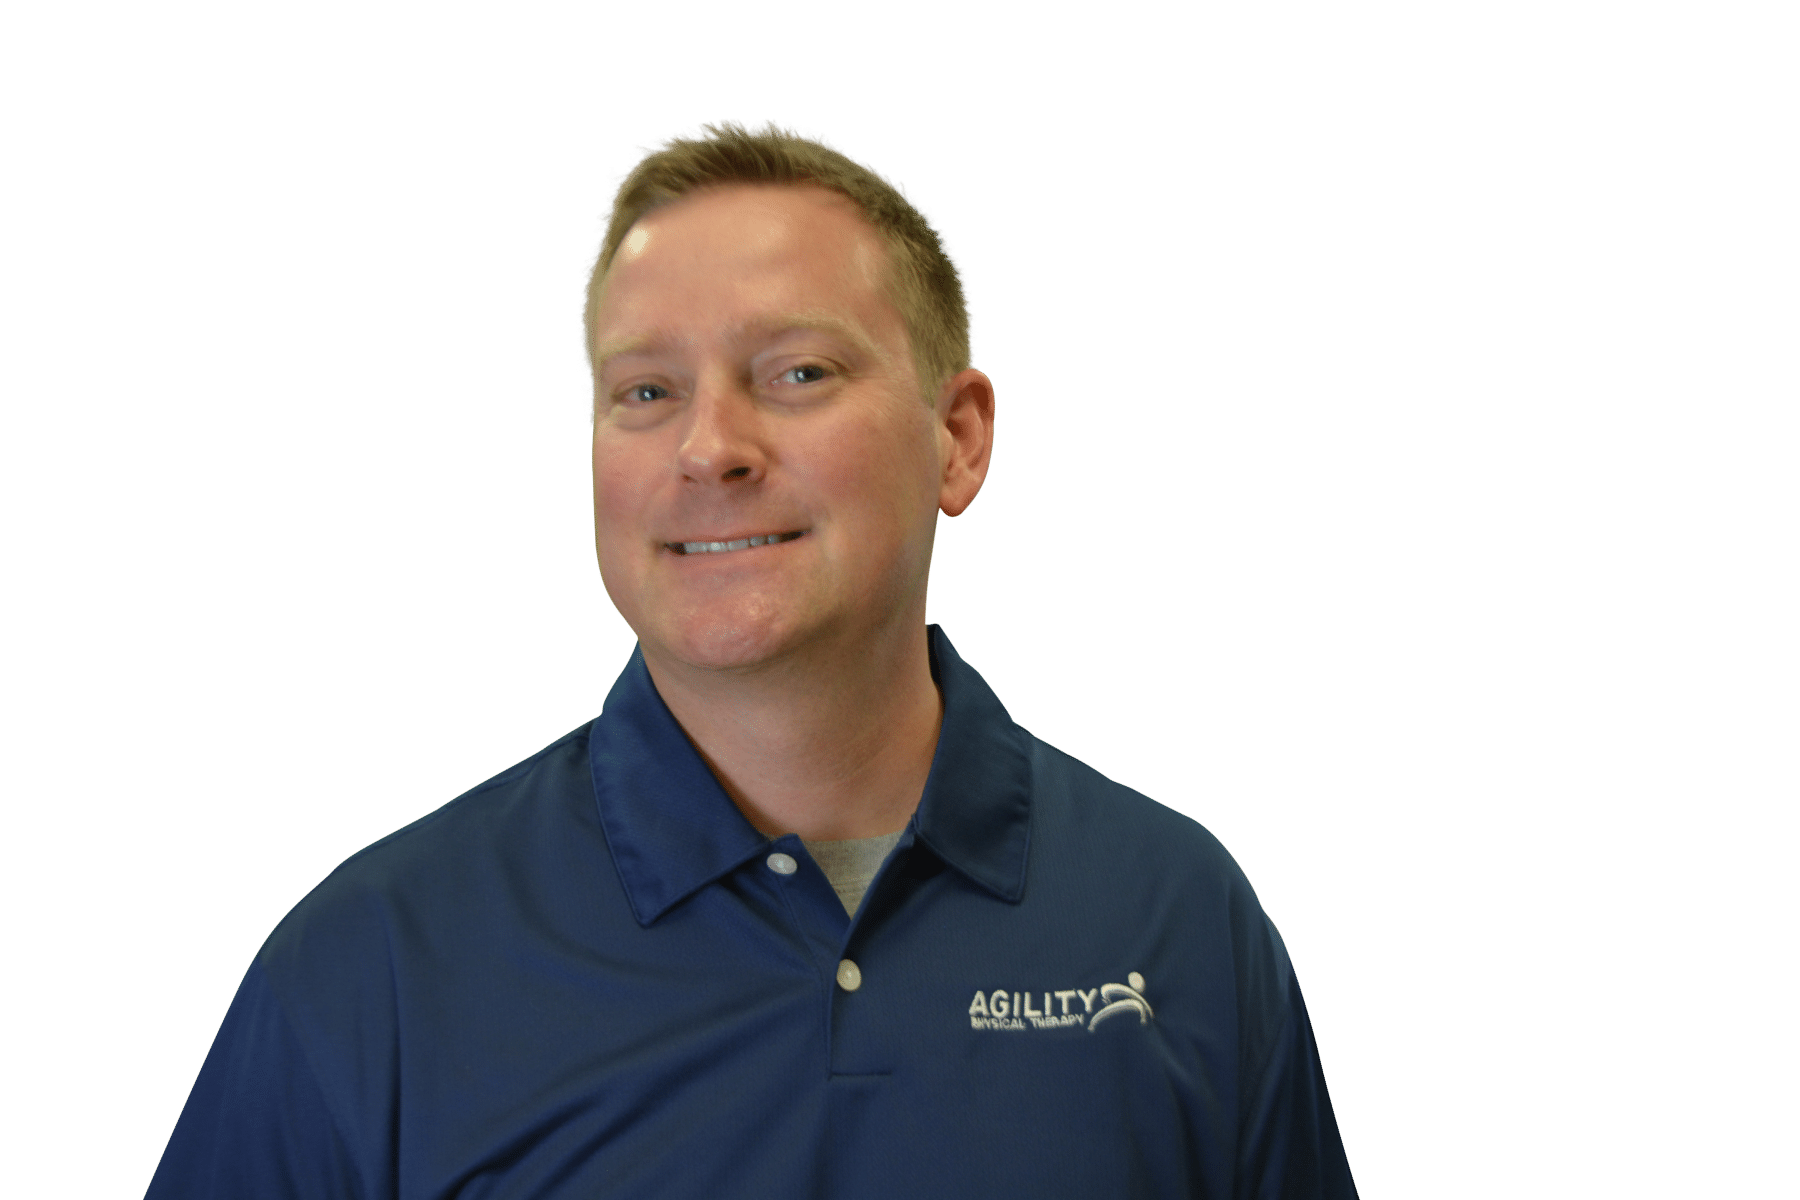 Greater buffalo physical therapy - Mark Roberts